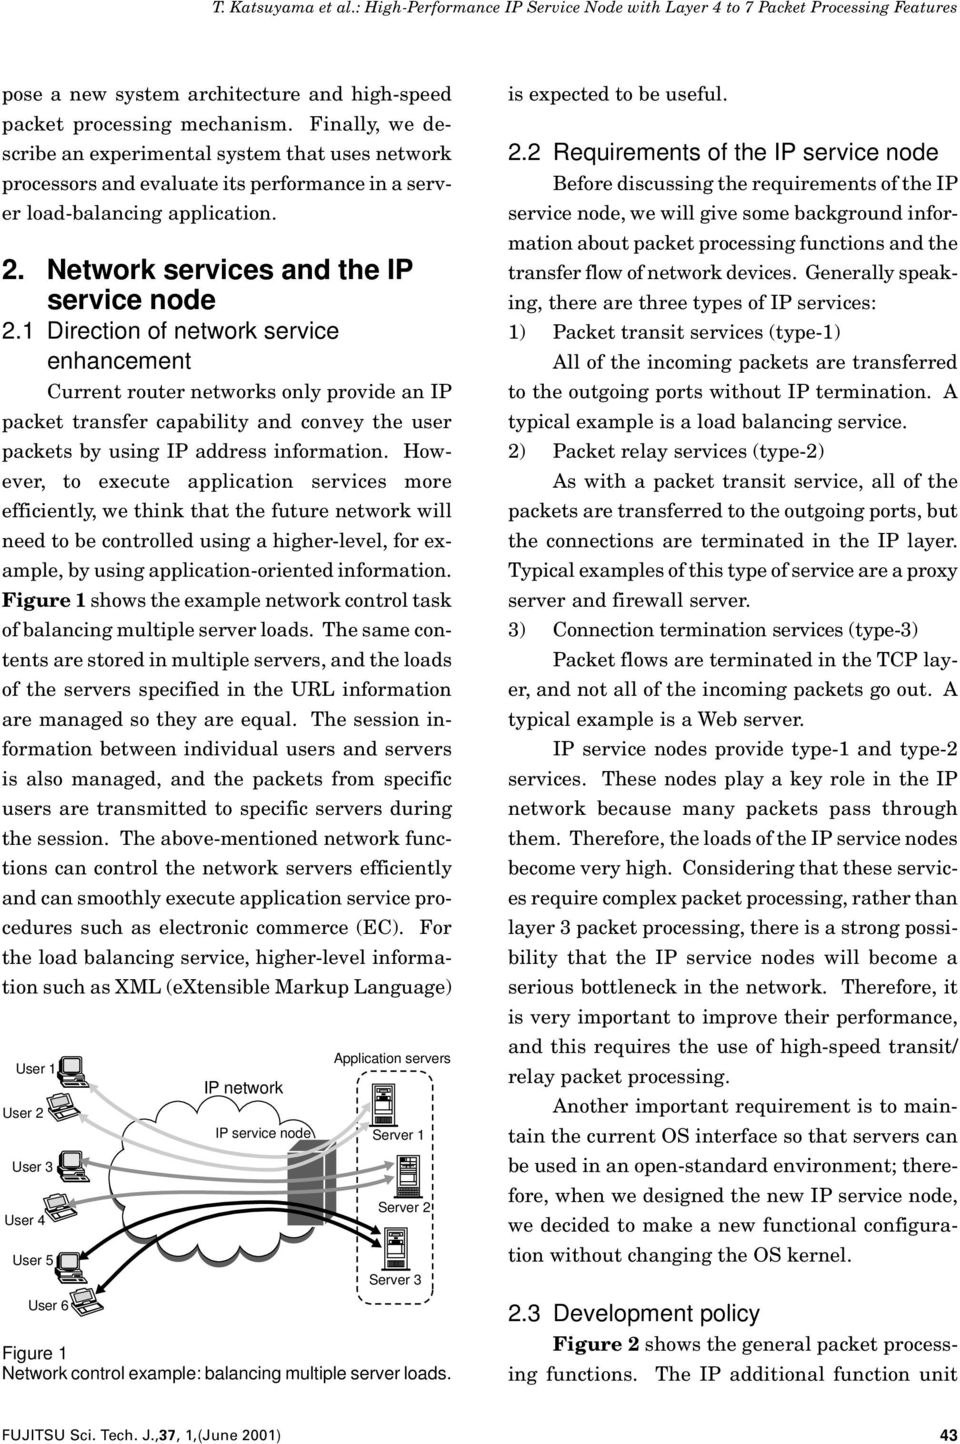 1 Direction of network service enhancement Current router networks only provide an IP packet transfer capability and convey the user packets by using IP address information.